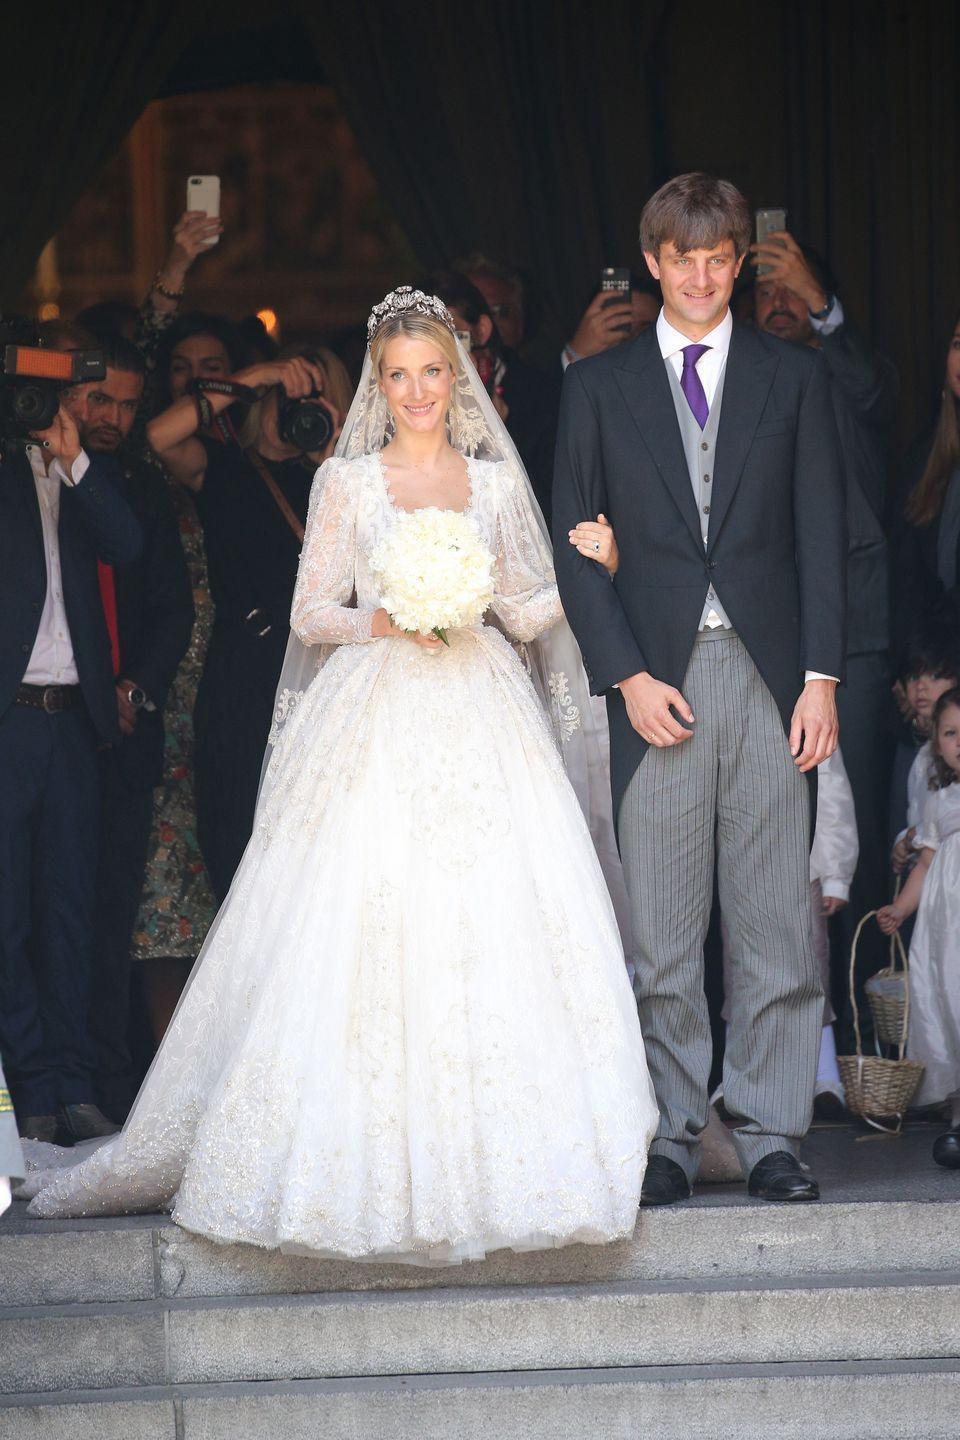 <p>Technically, the German House of Hanover hasn't ruled over a kingdom in <span>over a century</span>; but, Prince Ernst August of Hanover, Jr.'s wedding to Ekaterina Malysheva was still an undoubtedly royal affair. Lebanese designer Sandra Mansour dressed the Russian-born, London-based bride in a gown composed of Chantilly lace, beaded details, and hints of light pink. </p><p>Fun fact: the royal bride happens to be a fashion designer herself. She runs a high-end jumpsuit line called EKAT.</p>